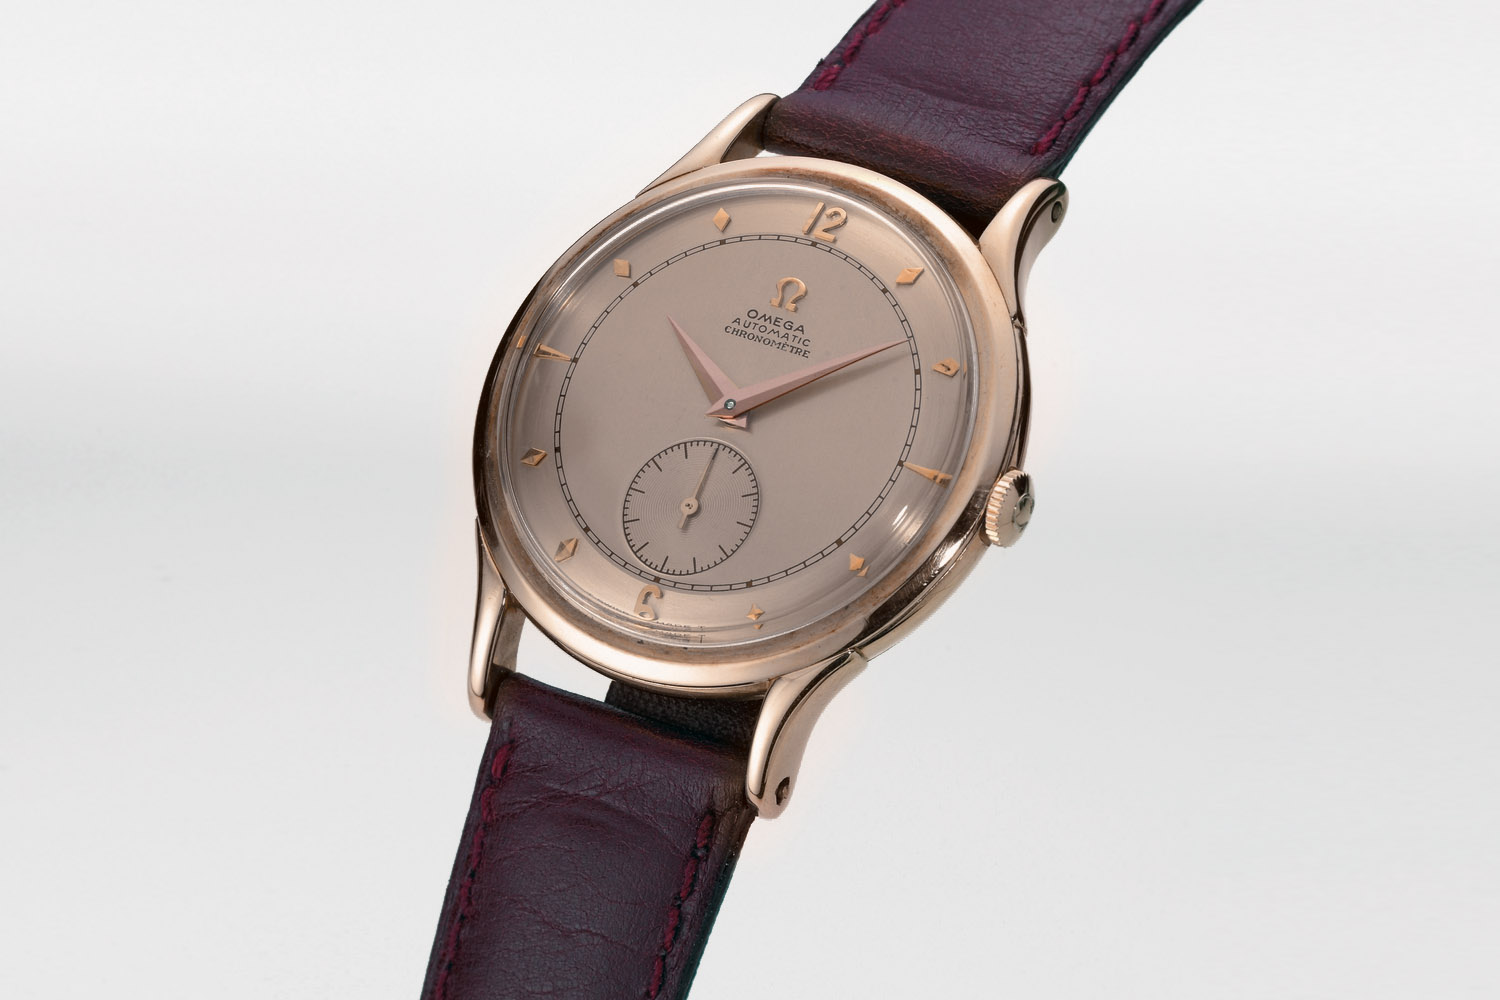 Omega 1948 Centenary chronometer-certified watch